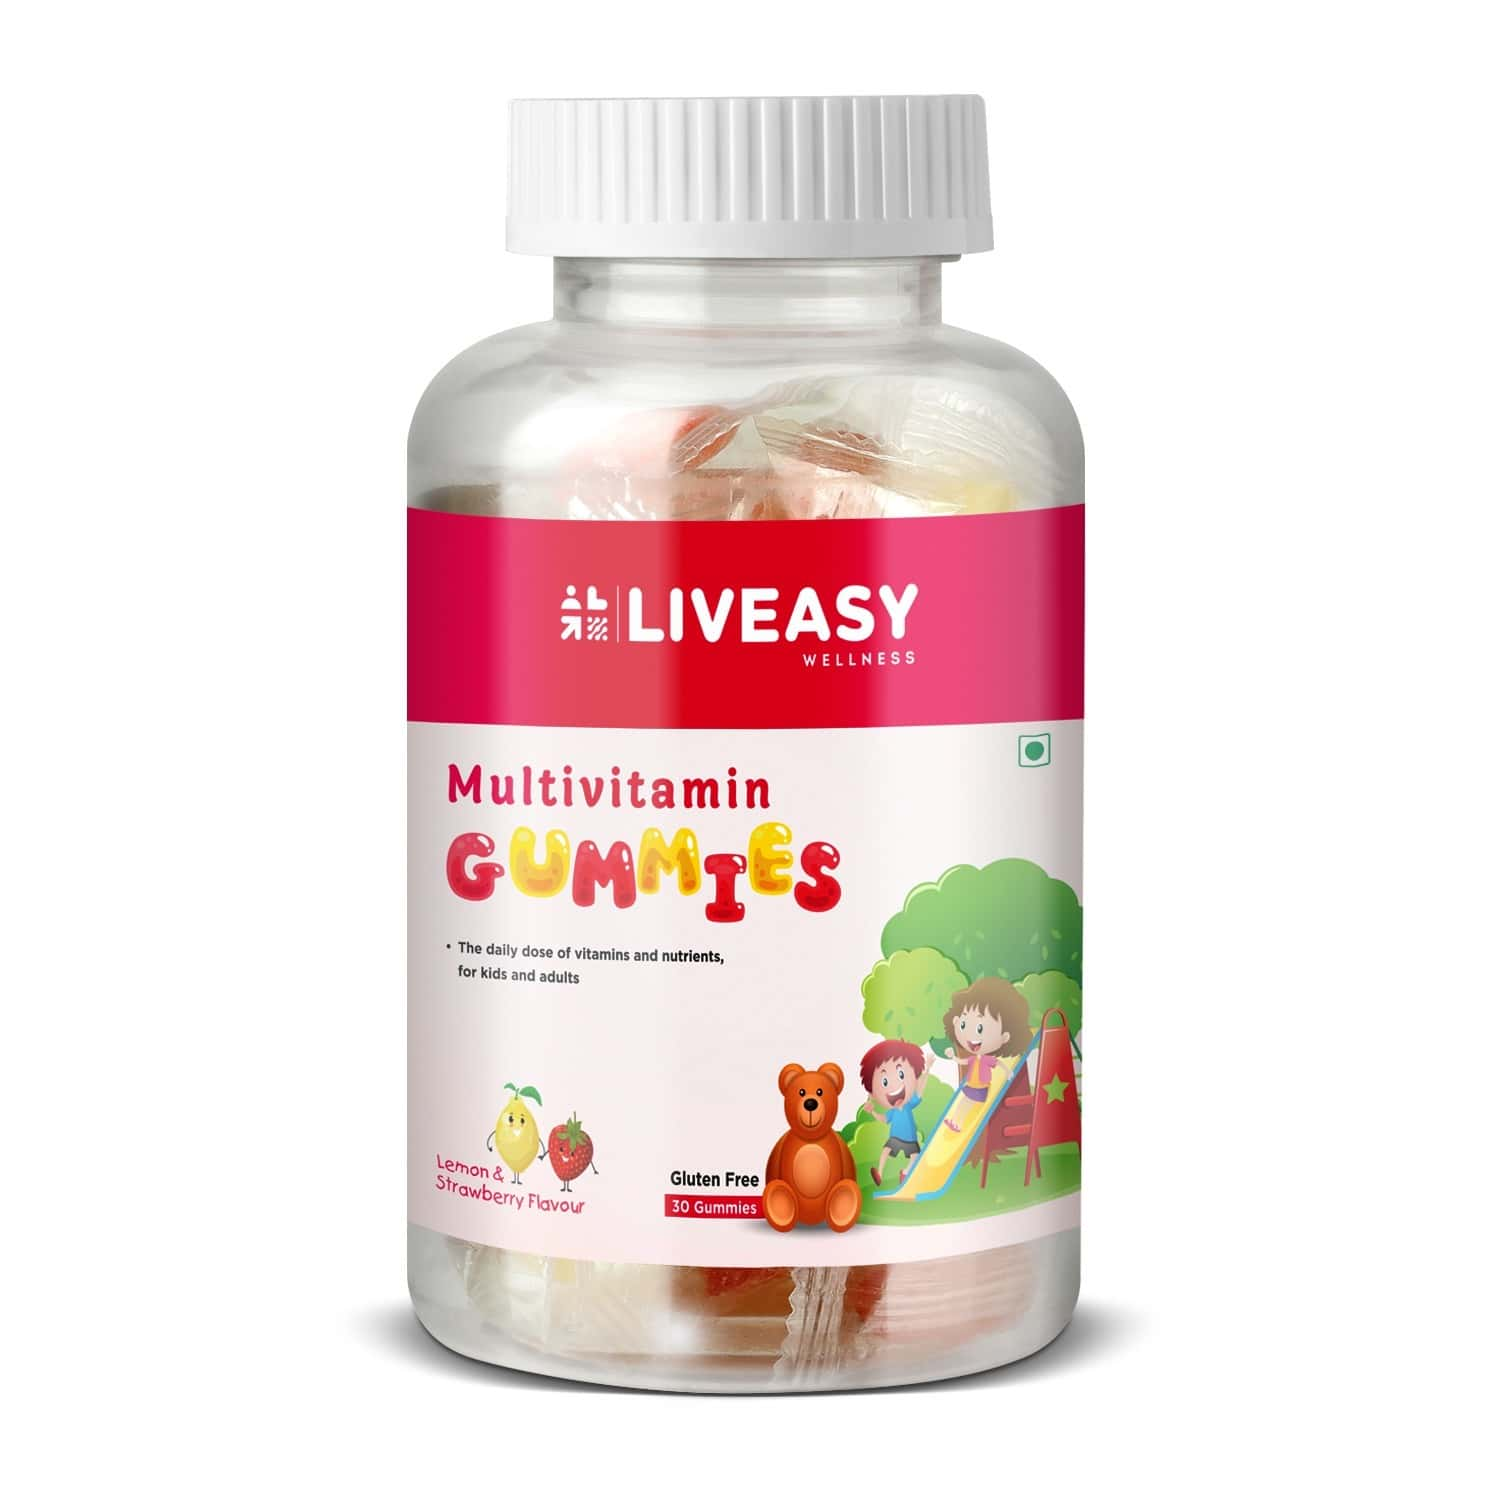 Liveasy Wellness Multivitamin Gummies For Kids And Adults- Pack Of 30